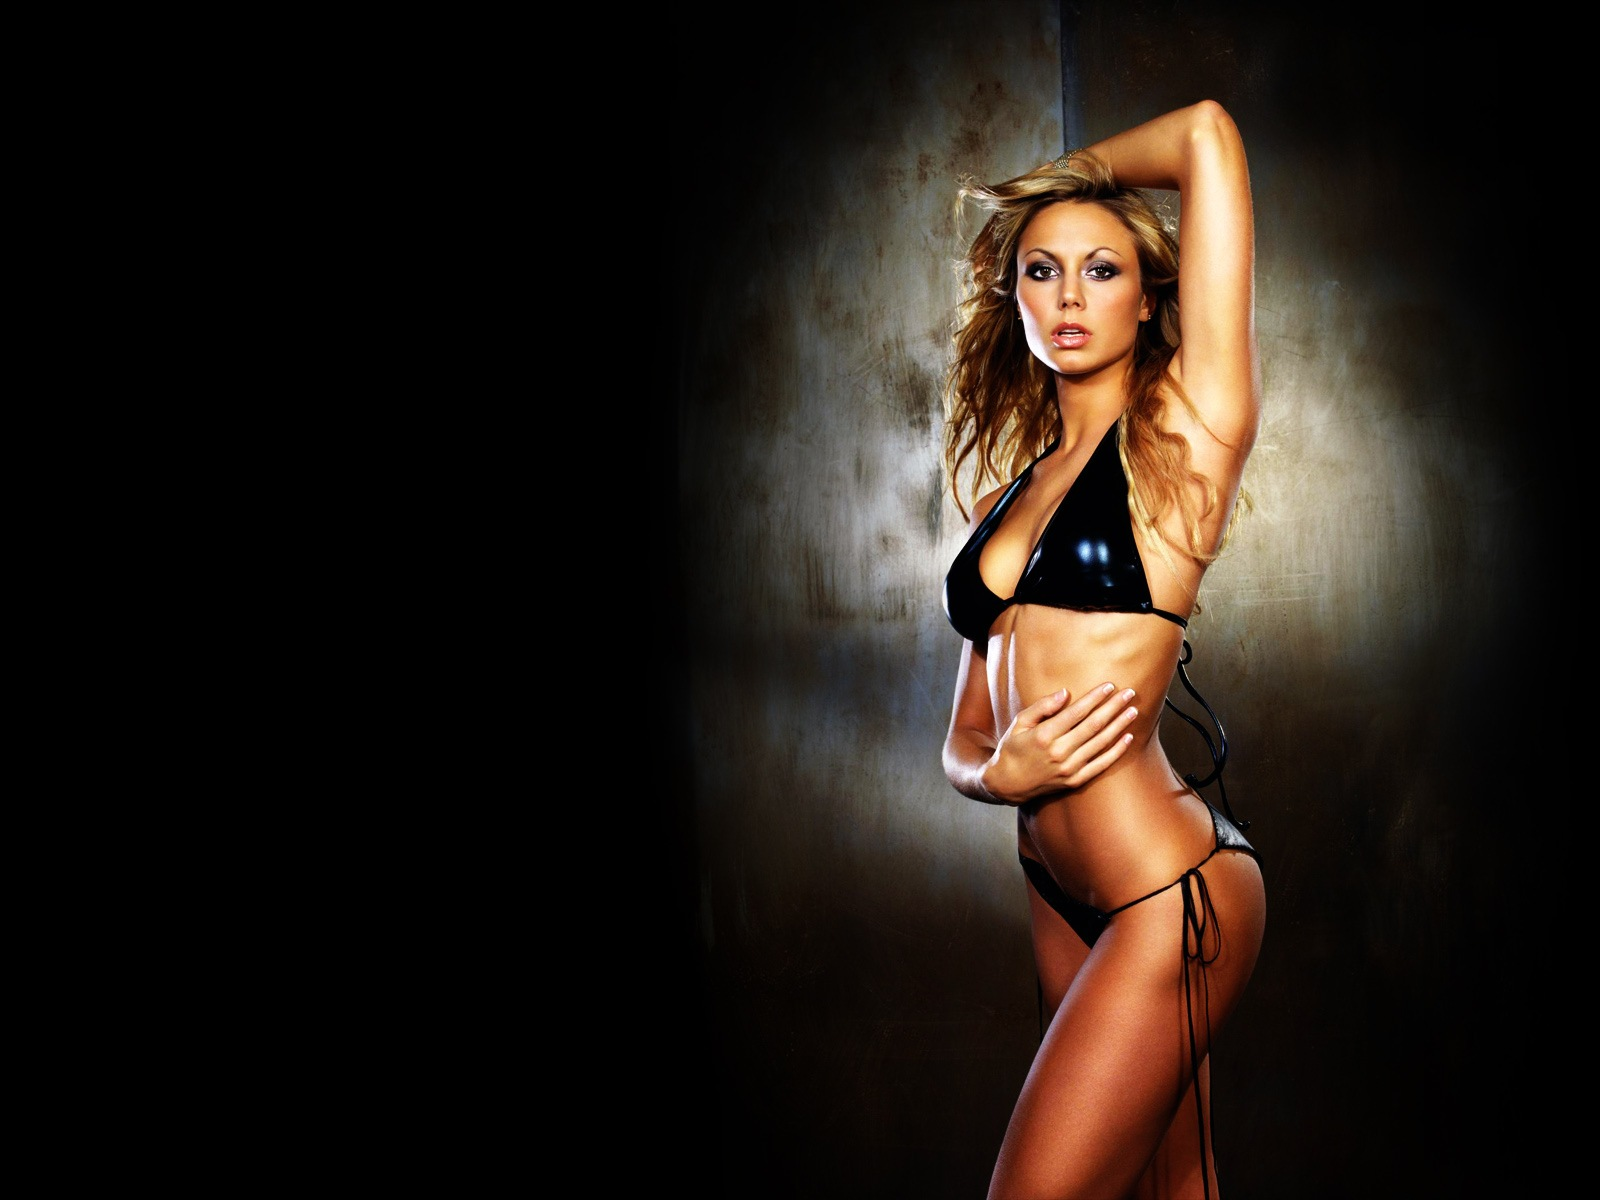 stacy keibler 1440x900 wallpapers - photo #22